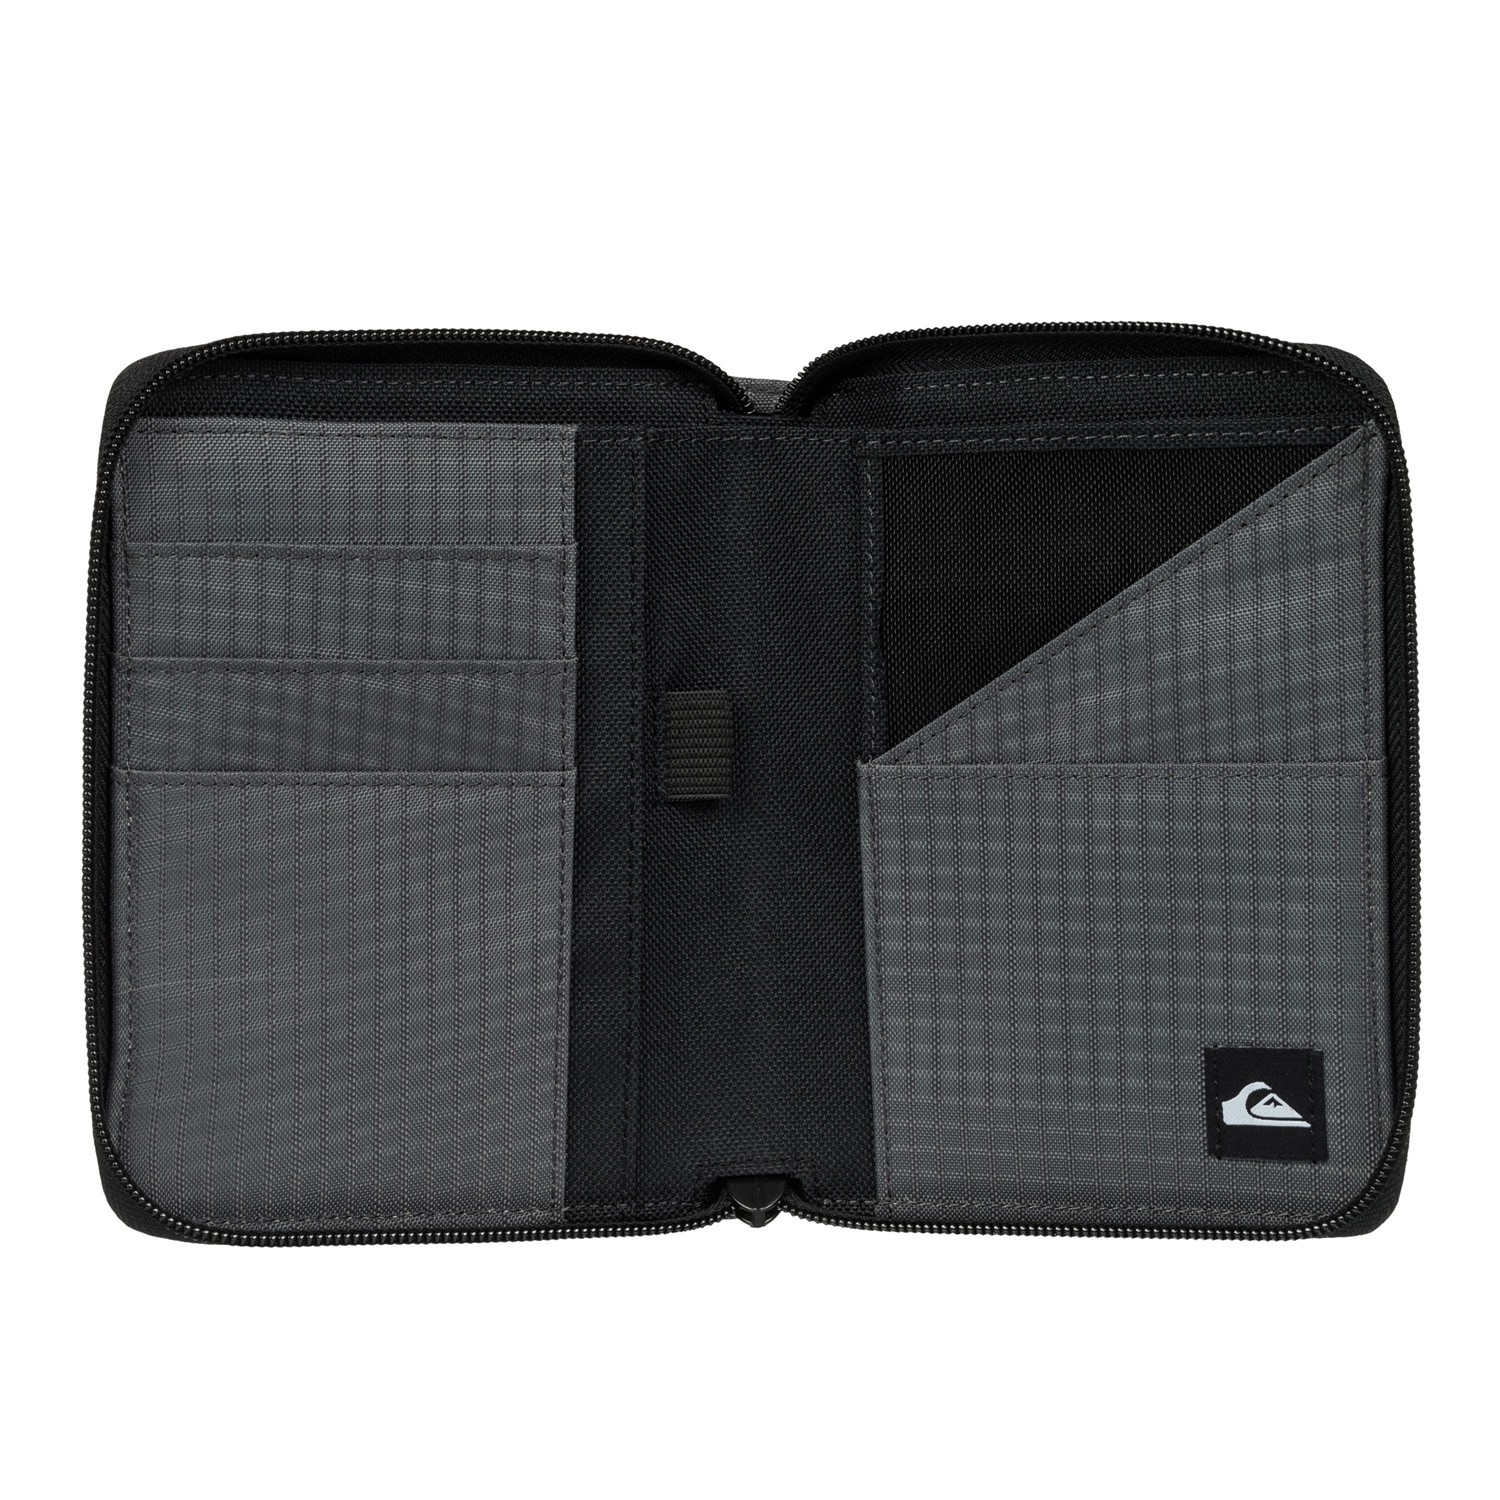 Quiksilver Quik Travel Wallet